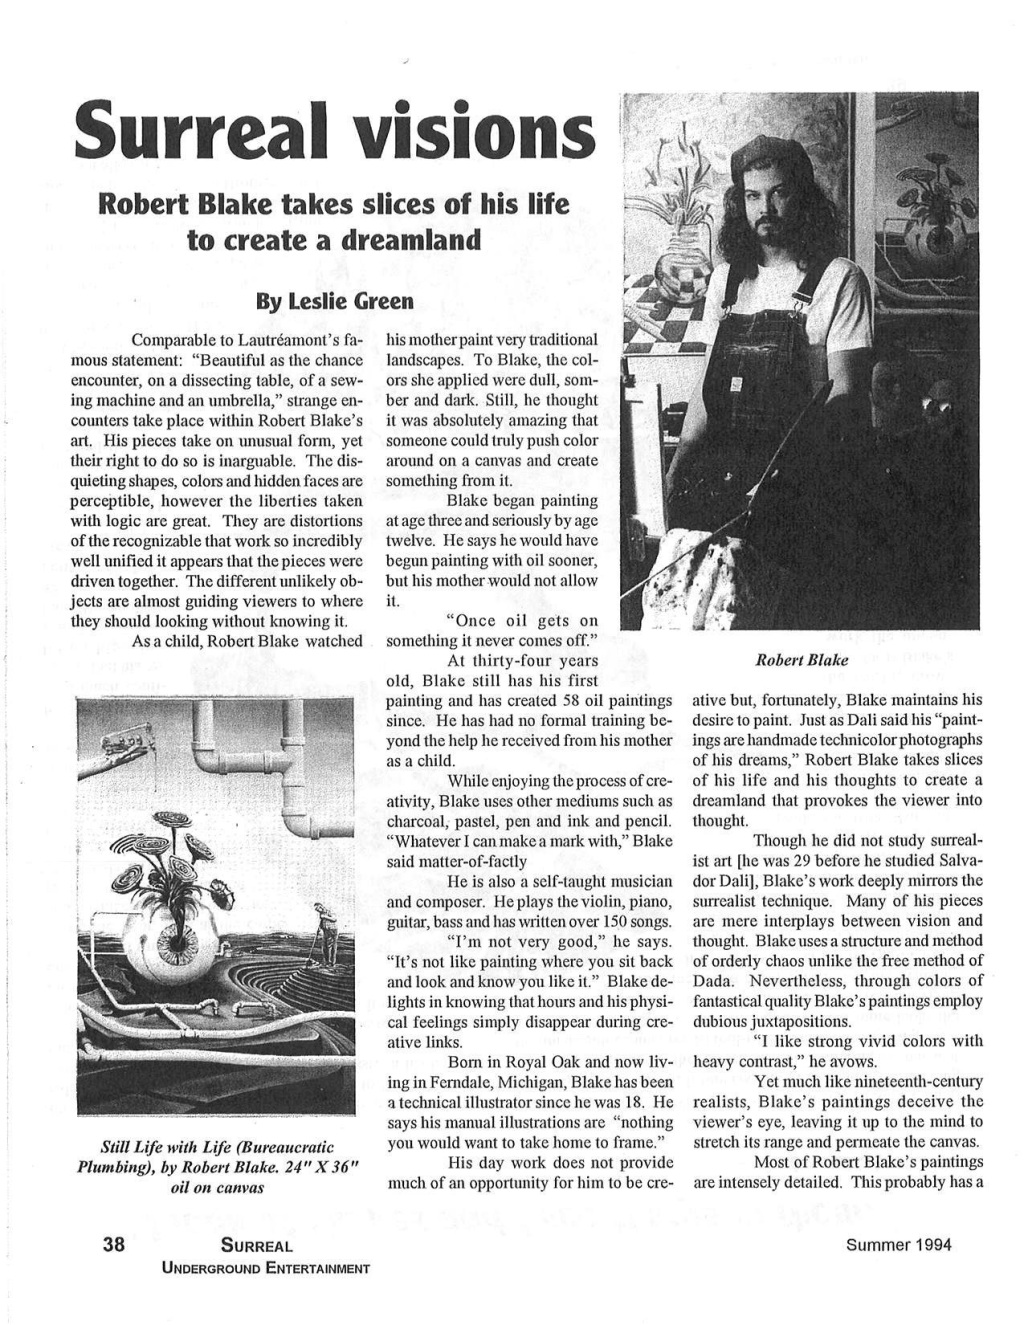 robertblakevisions_surreal_page1